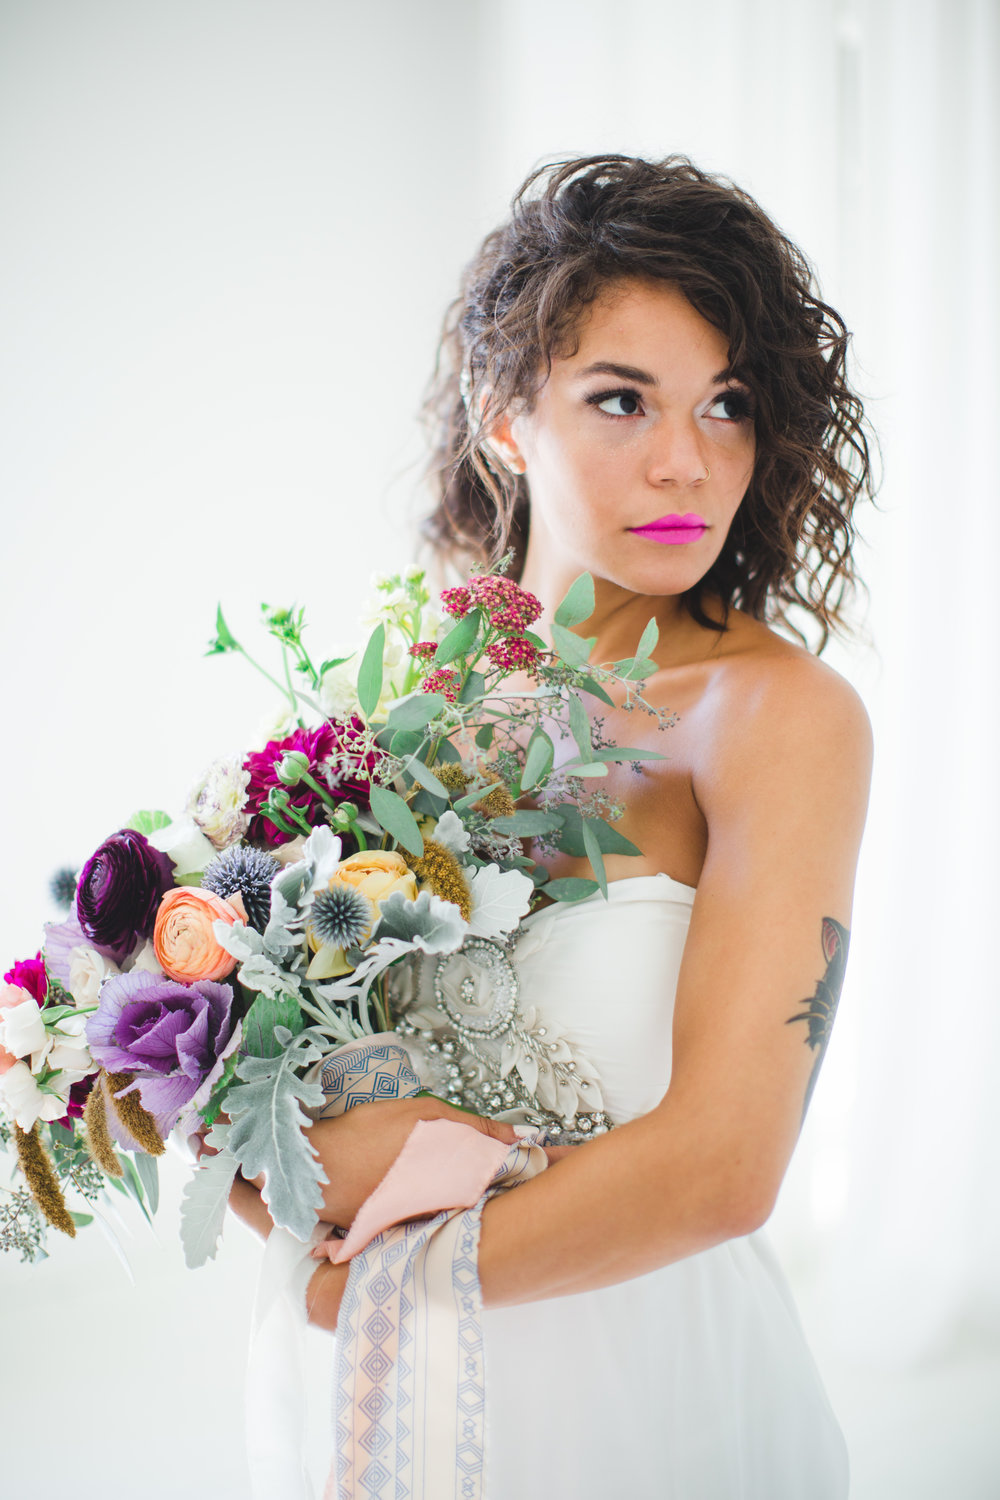 SmittenKickstarter-anna-campbell-tash-ivory-and-beau-savannah-bridal-boutique-savannah-wedding-dresses-one-shoulder-beaded-wedding-dress-colorful-bouquet-izzy-hudgins-photography-savannah-bride-southern-brides-glam-rocker-chic-bride.jpg